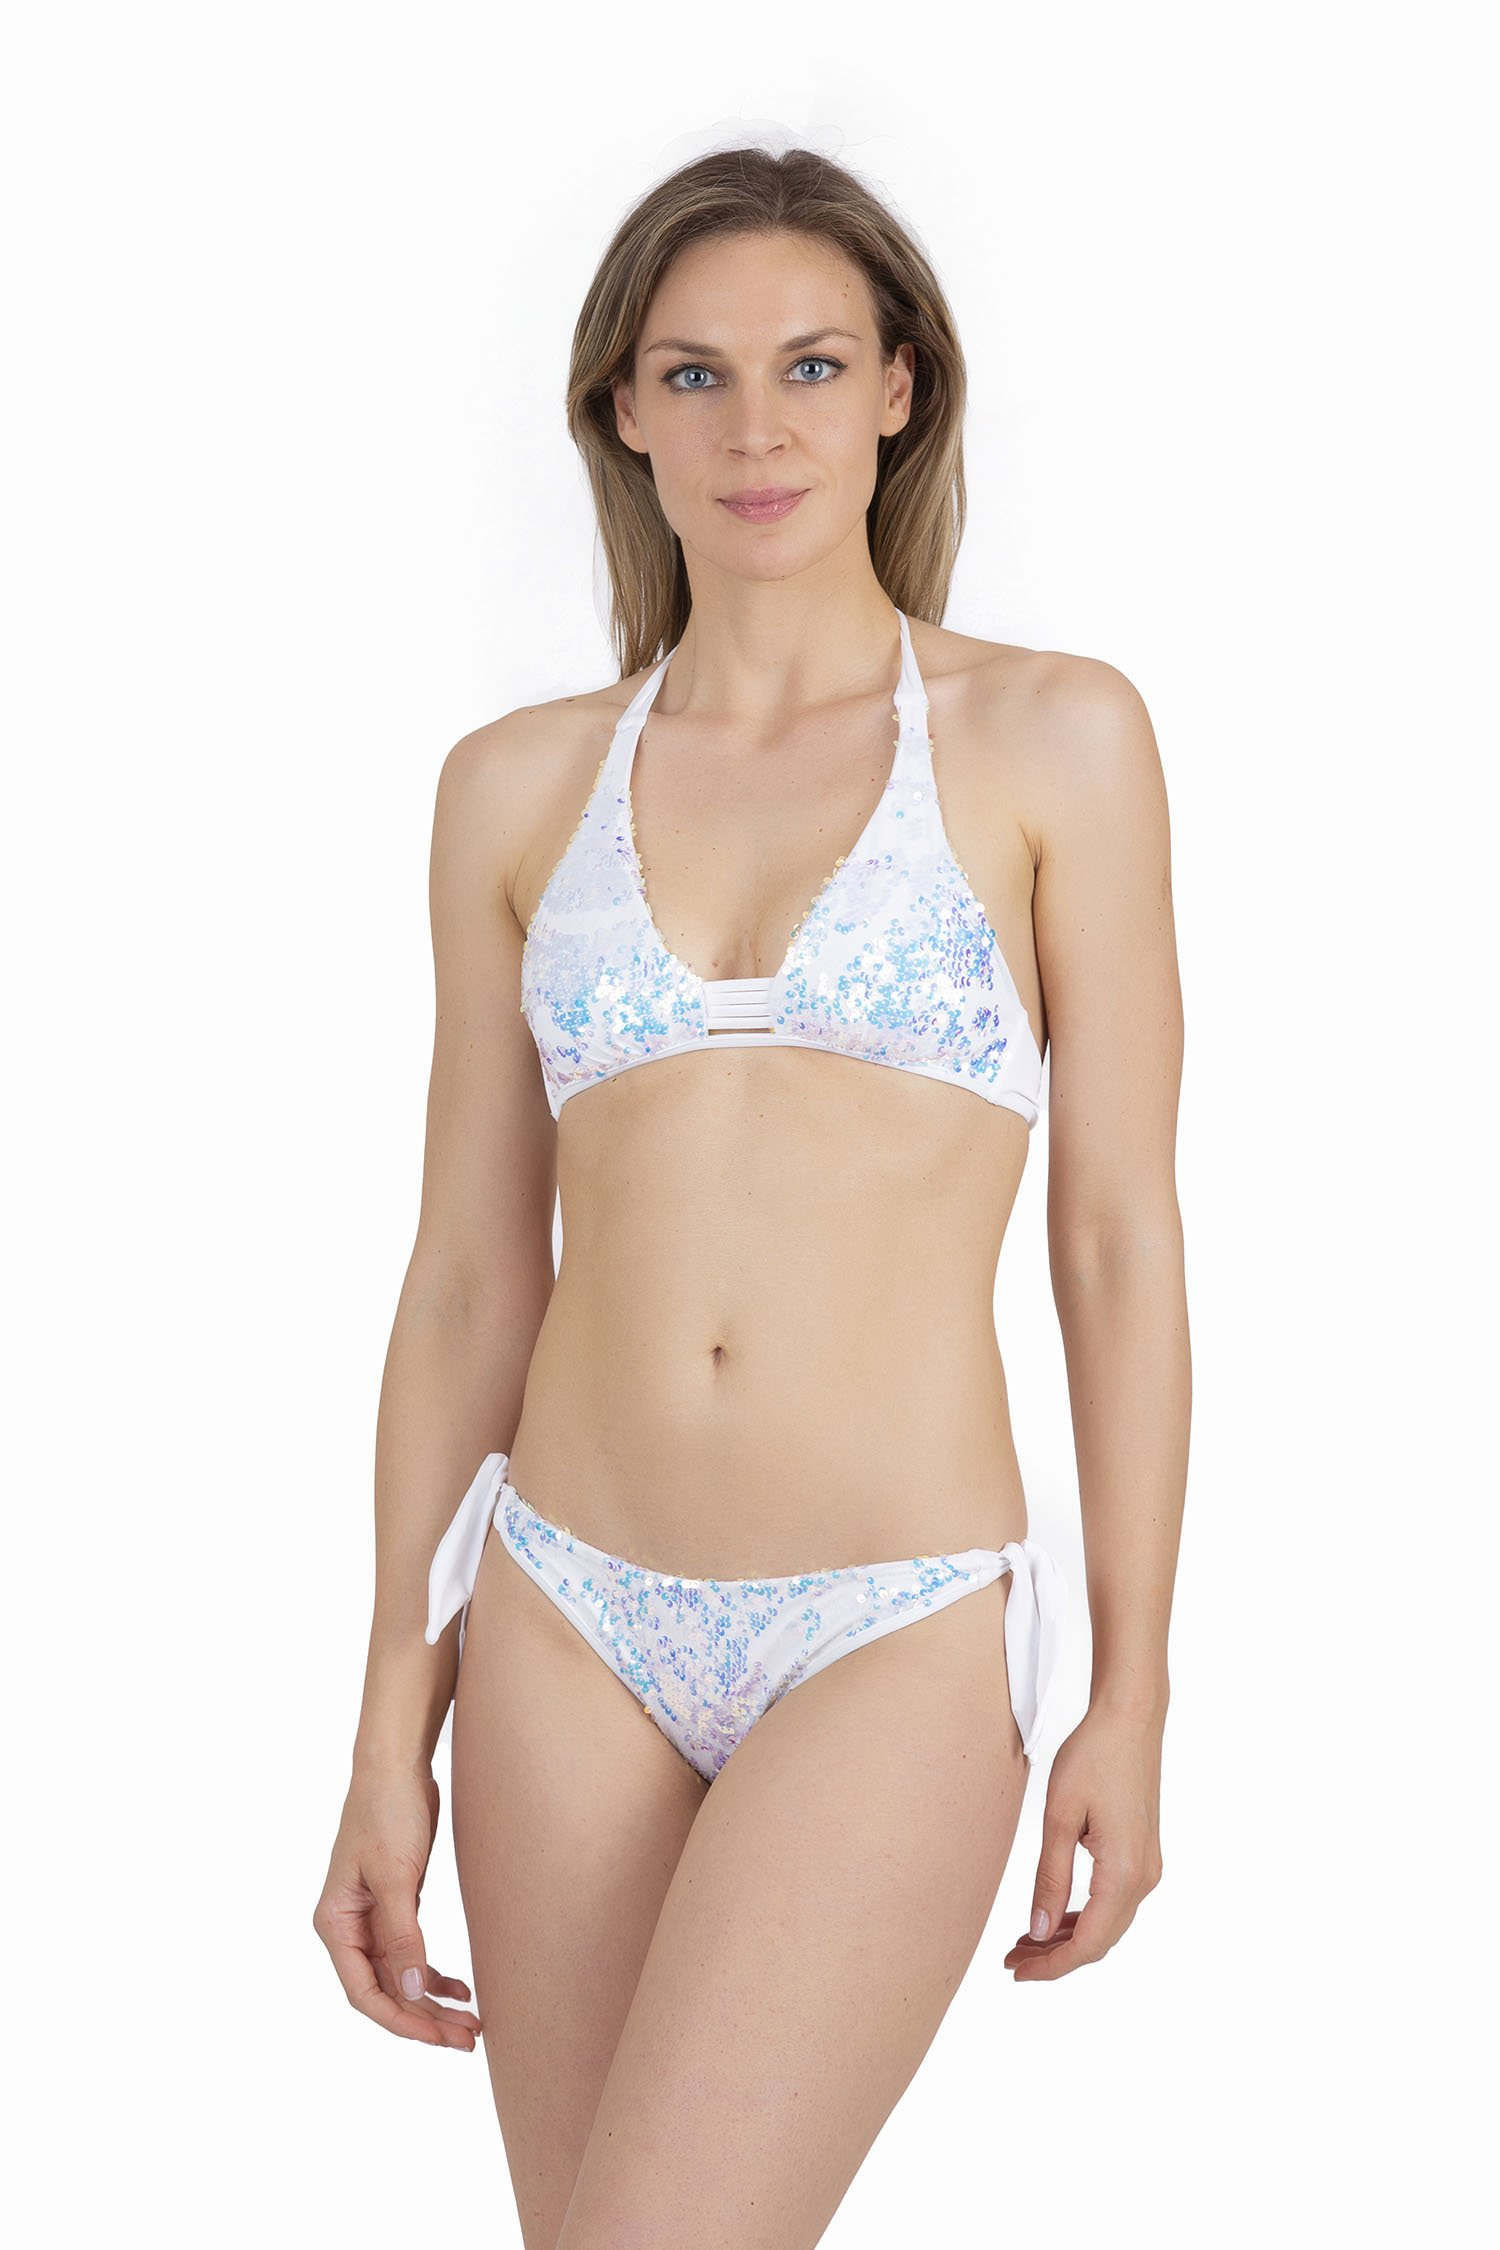 HALTER TRIANGLE WITH IRIDESCENT SEQUINS - Bianco White